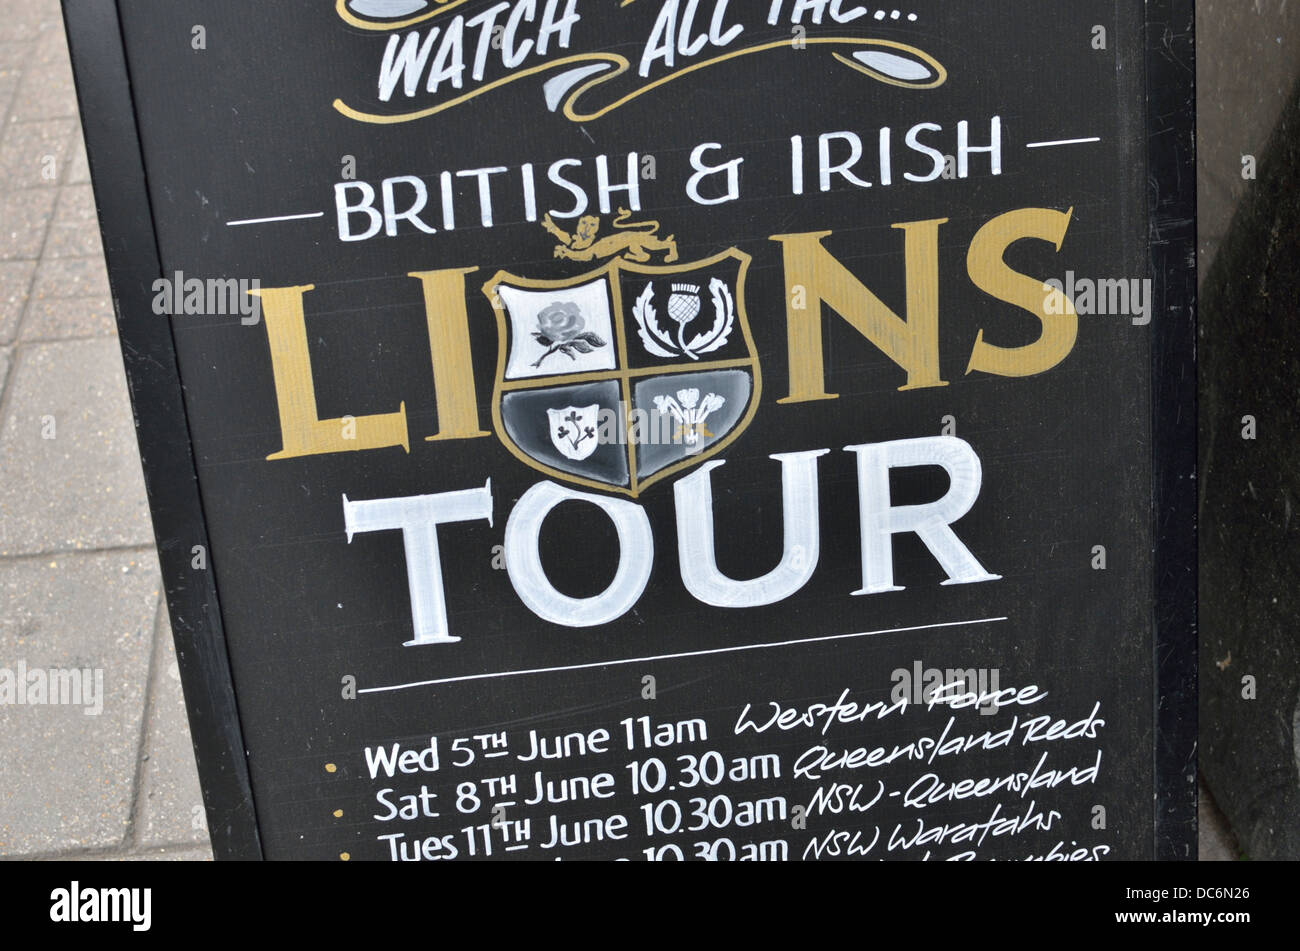 A Board outside a UK pub advertising televised British and Irish Lions Rugby Tour - Stock Image